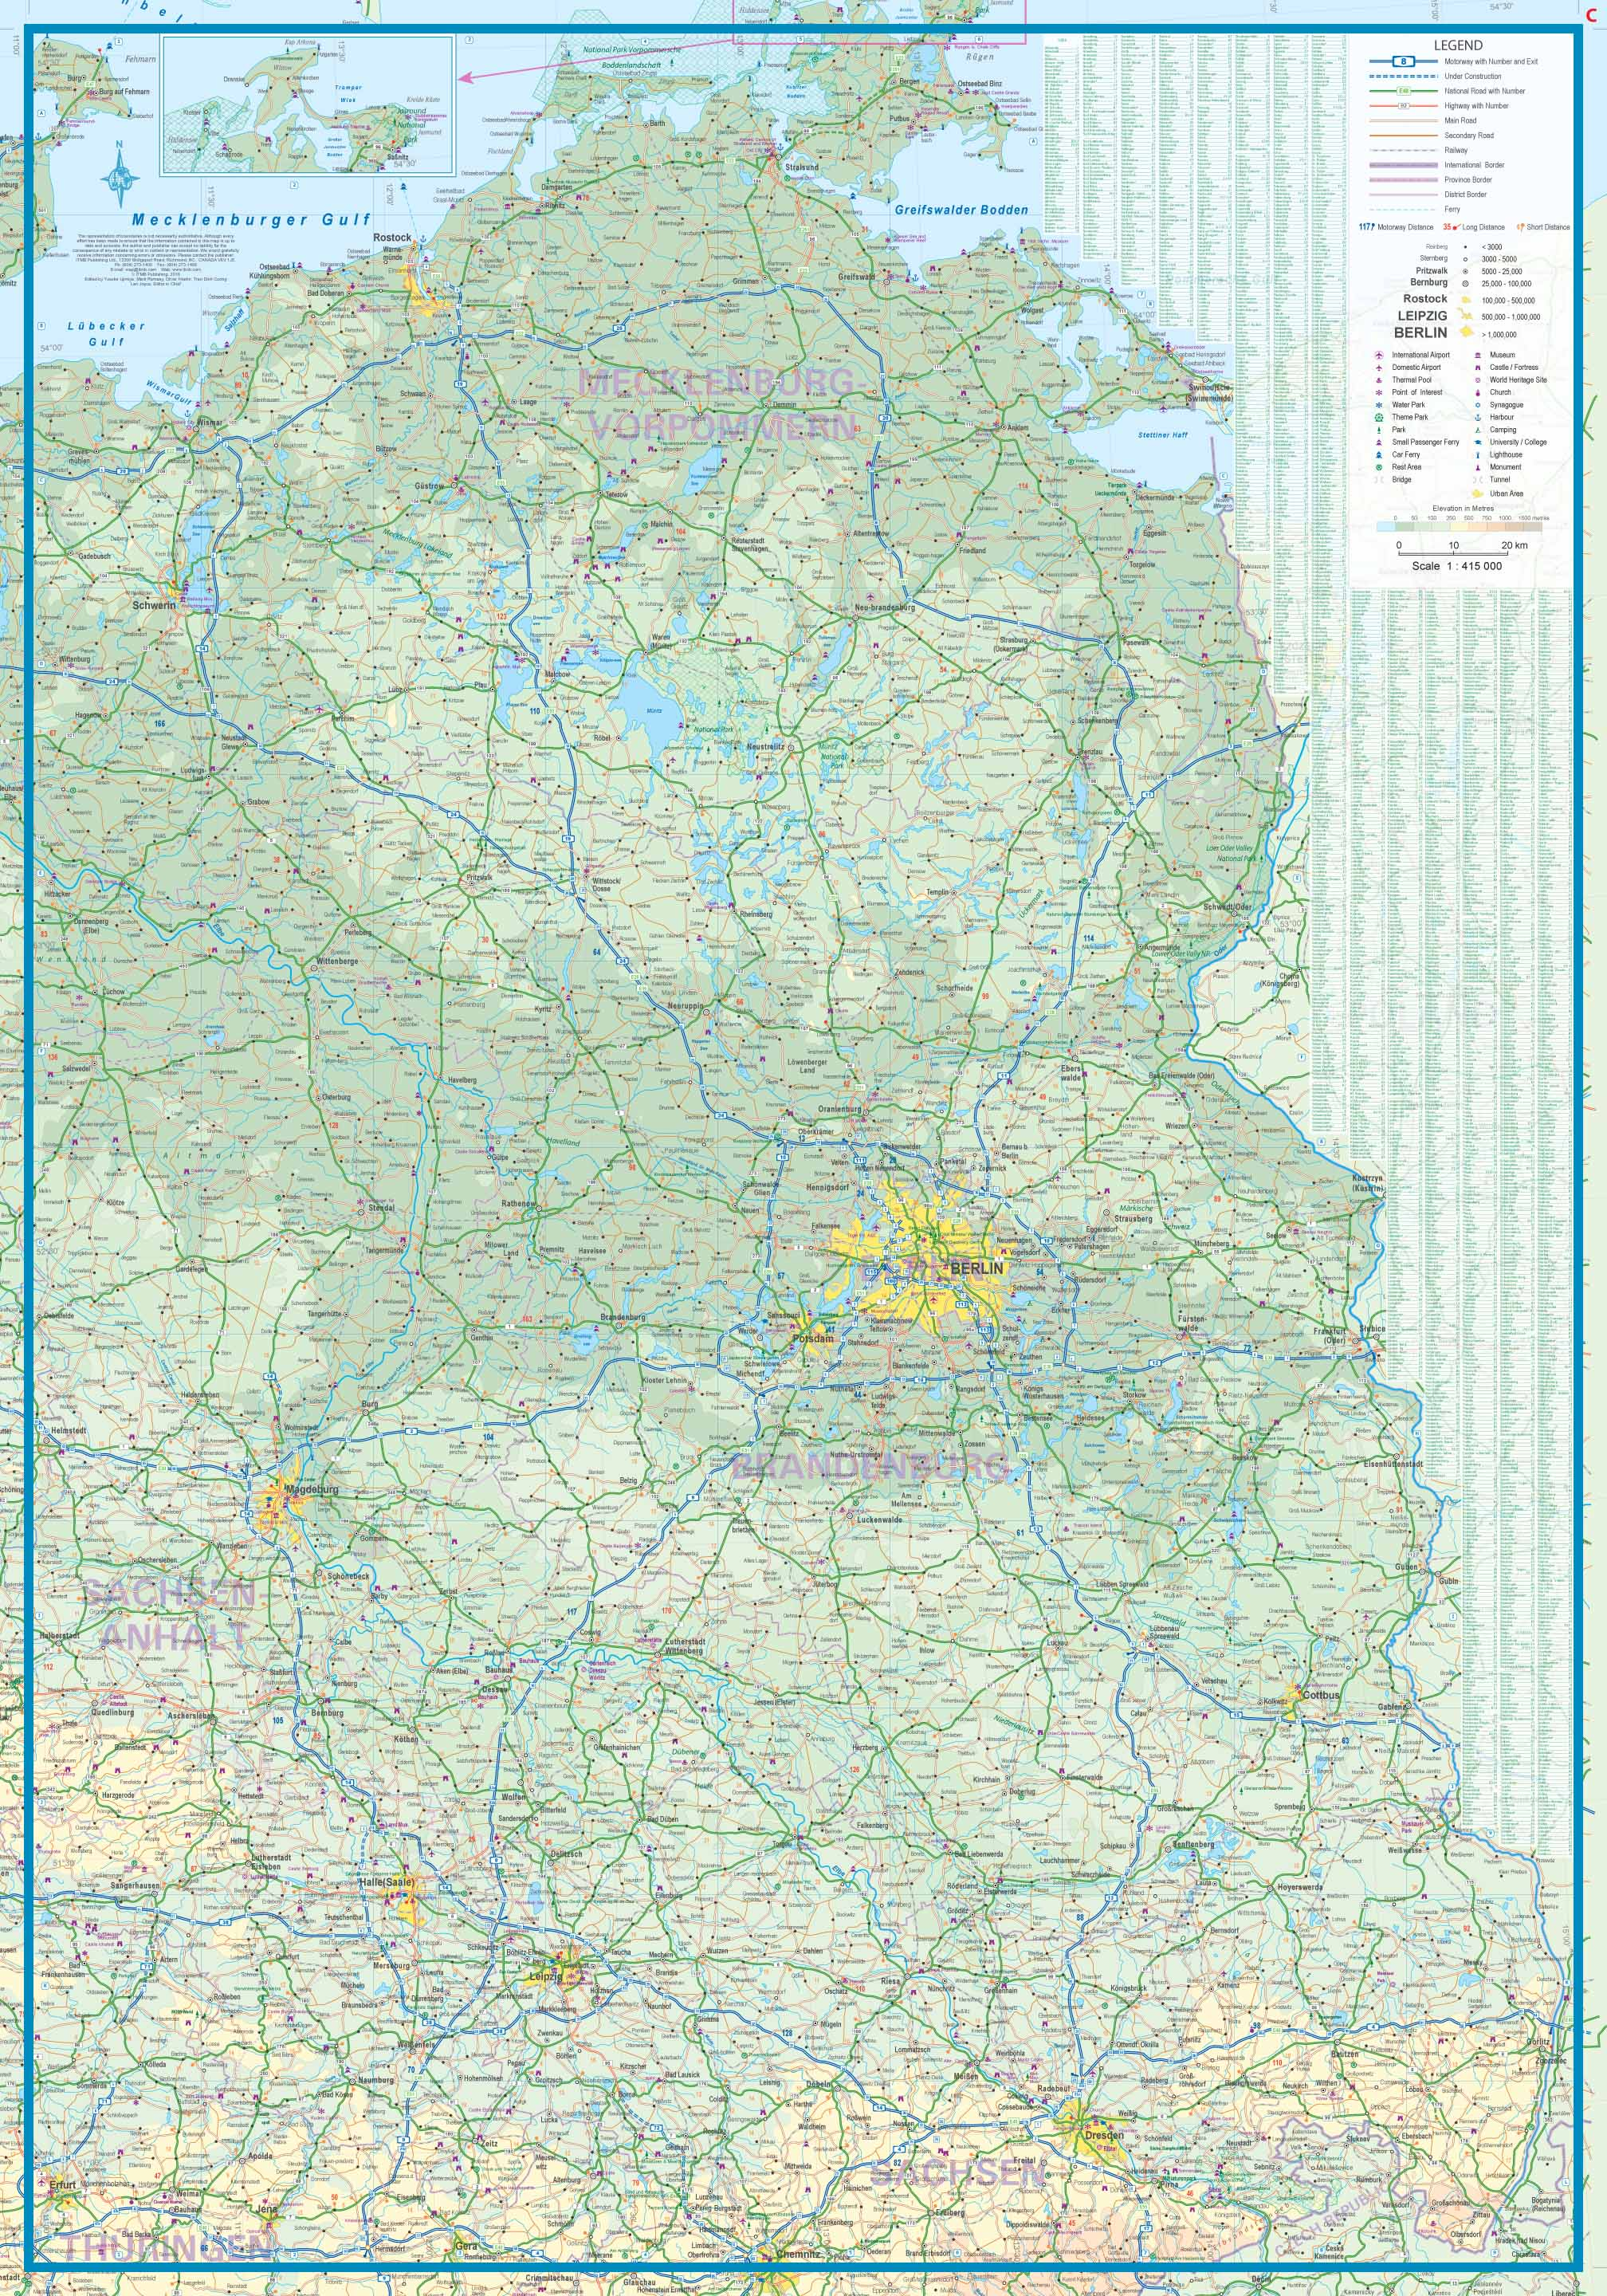 Map Of North West Germany.Maps For Travel City Maps Road Maps Guides Globes Topographic Maps